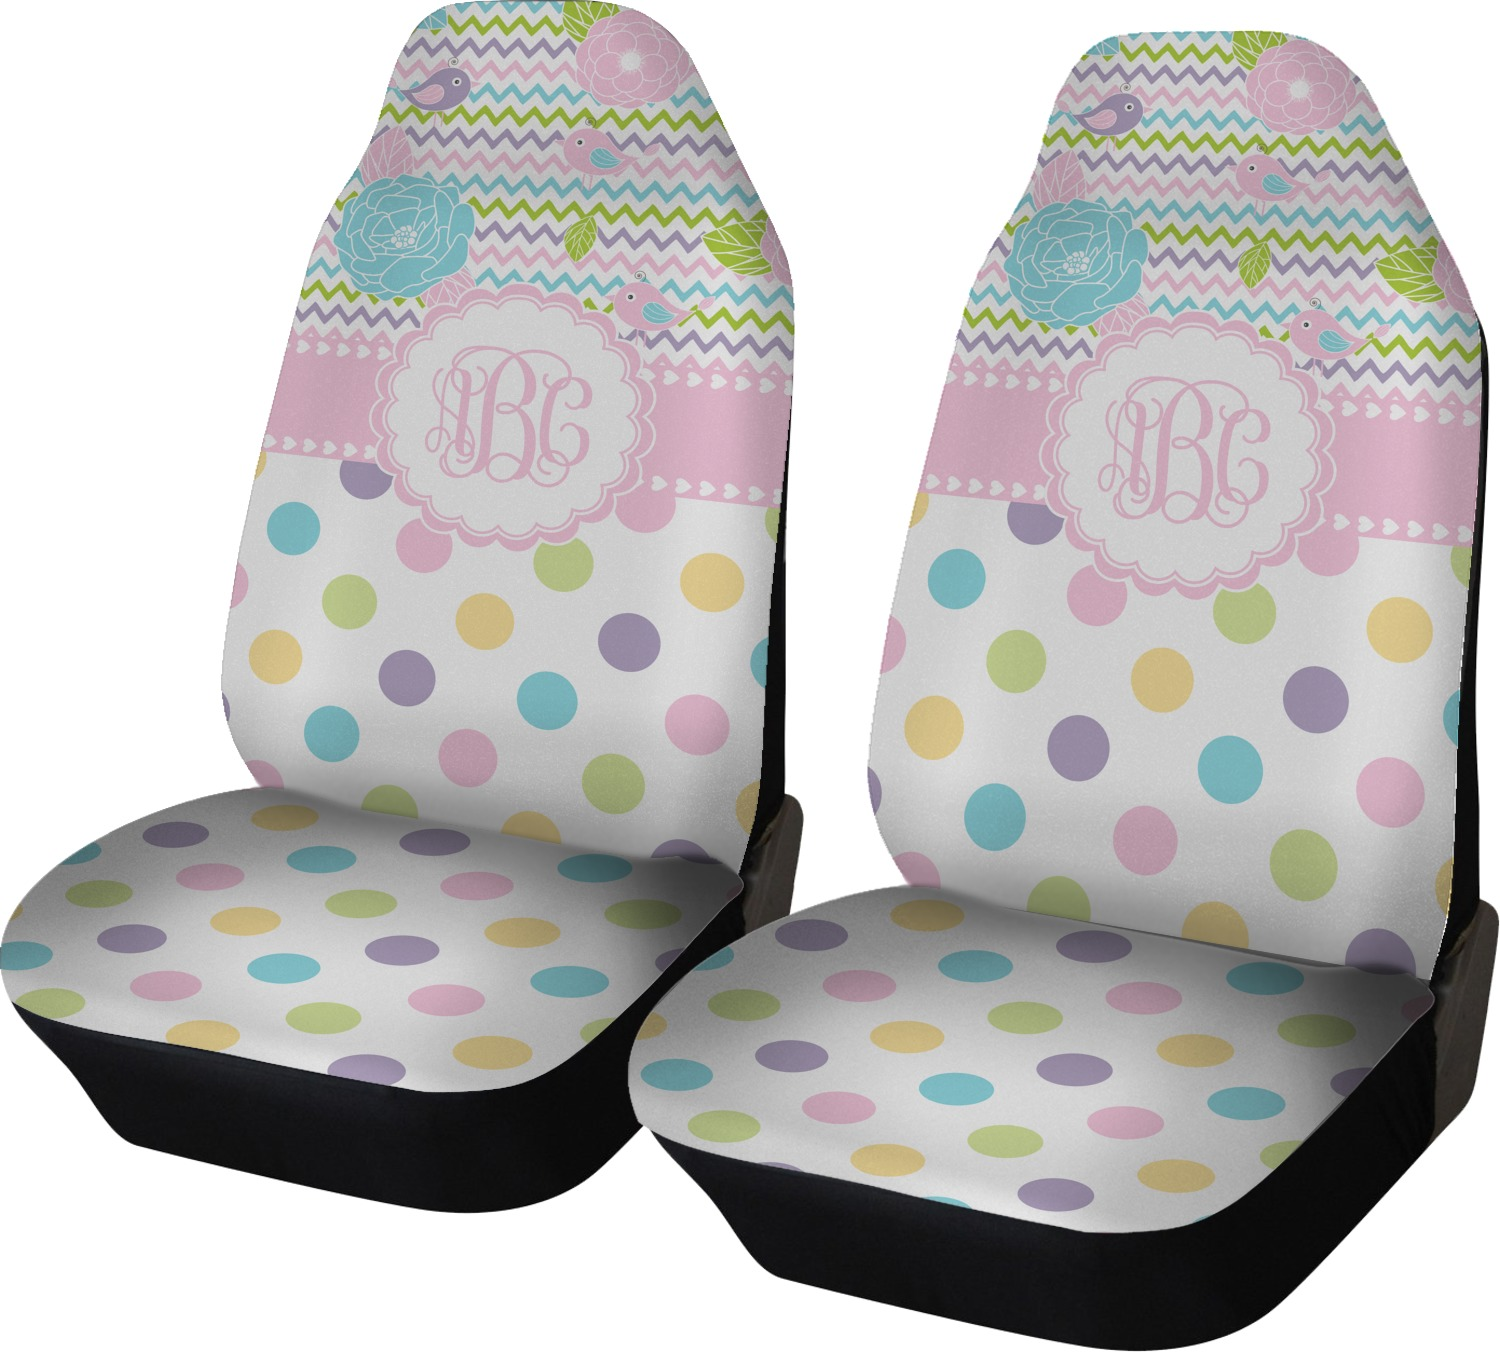 girly girl car seat covers set of two personalized youcustomizeit. Black Bedroom Furniture Sets. Home Design Ideas